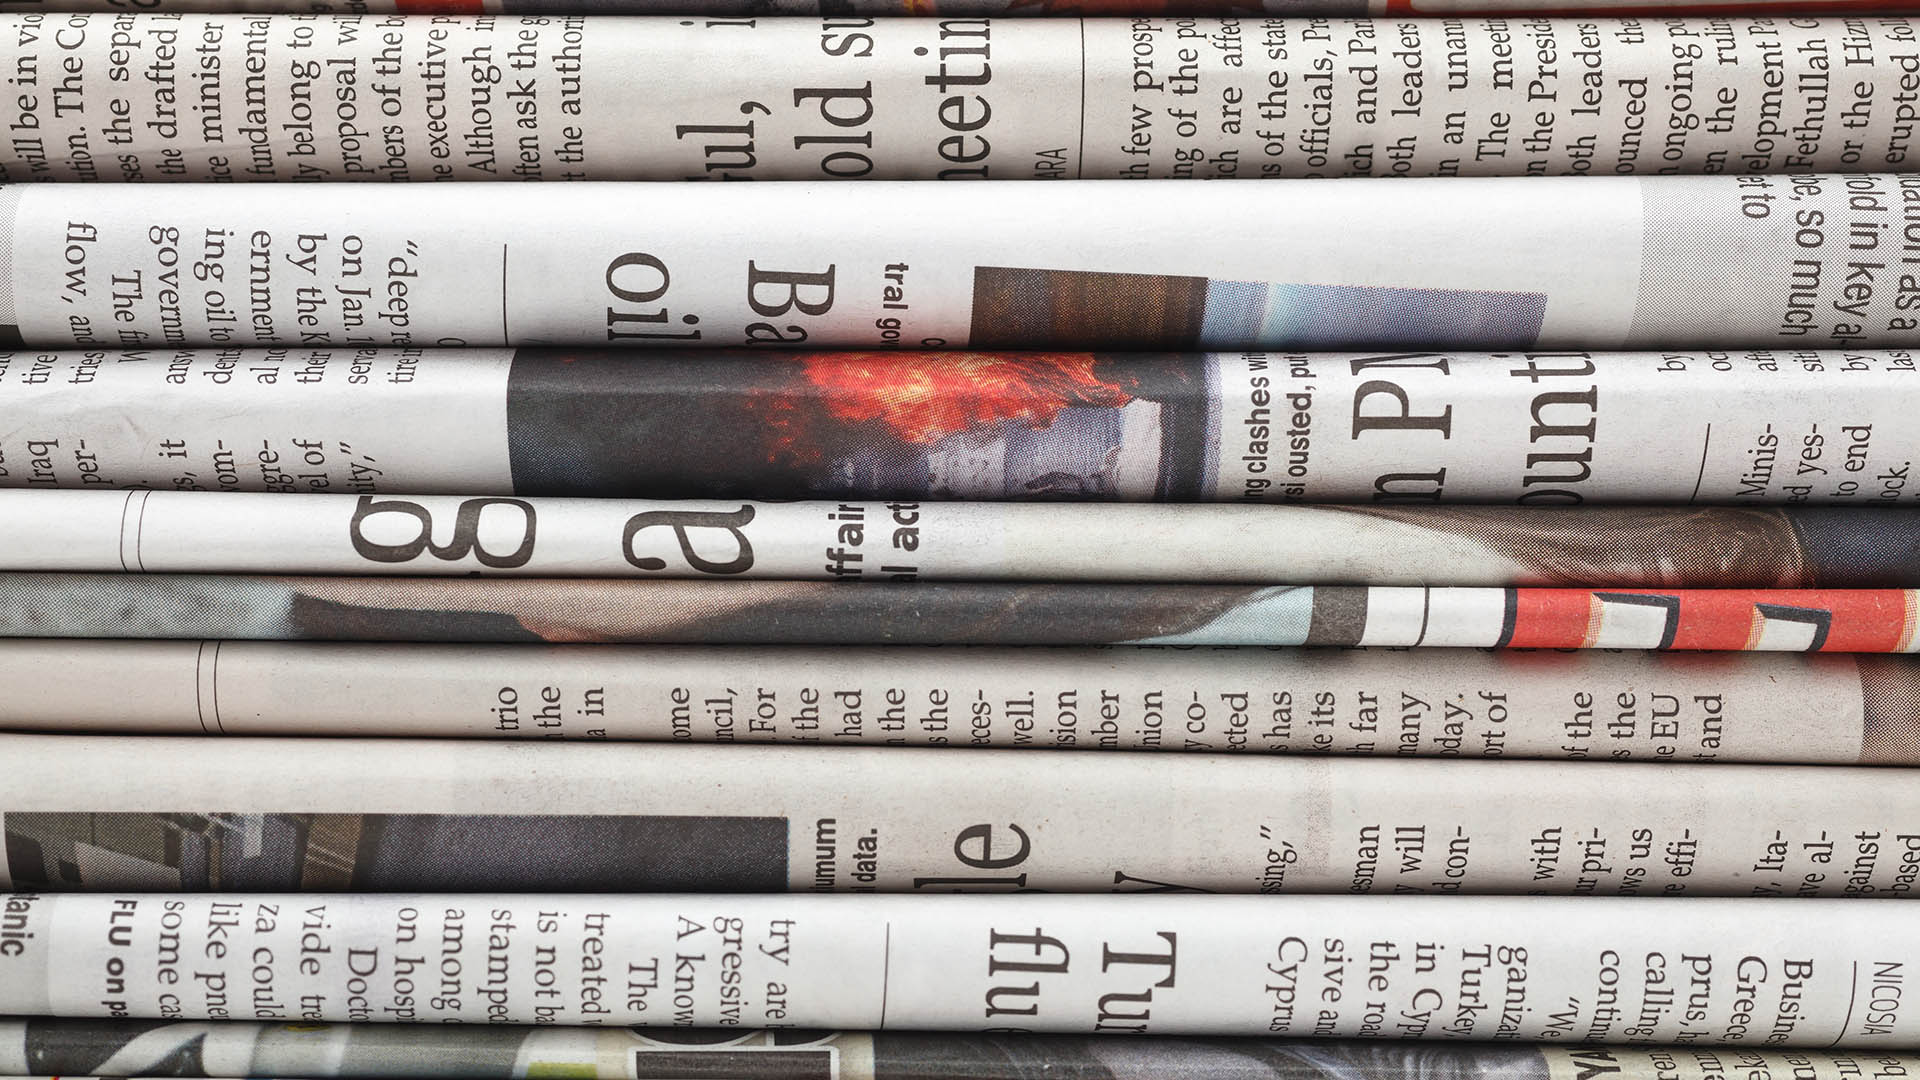 5 Tips for Designing on Newsprint